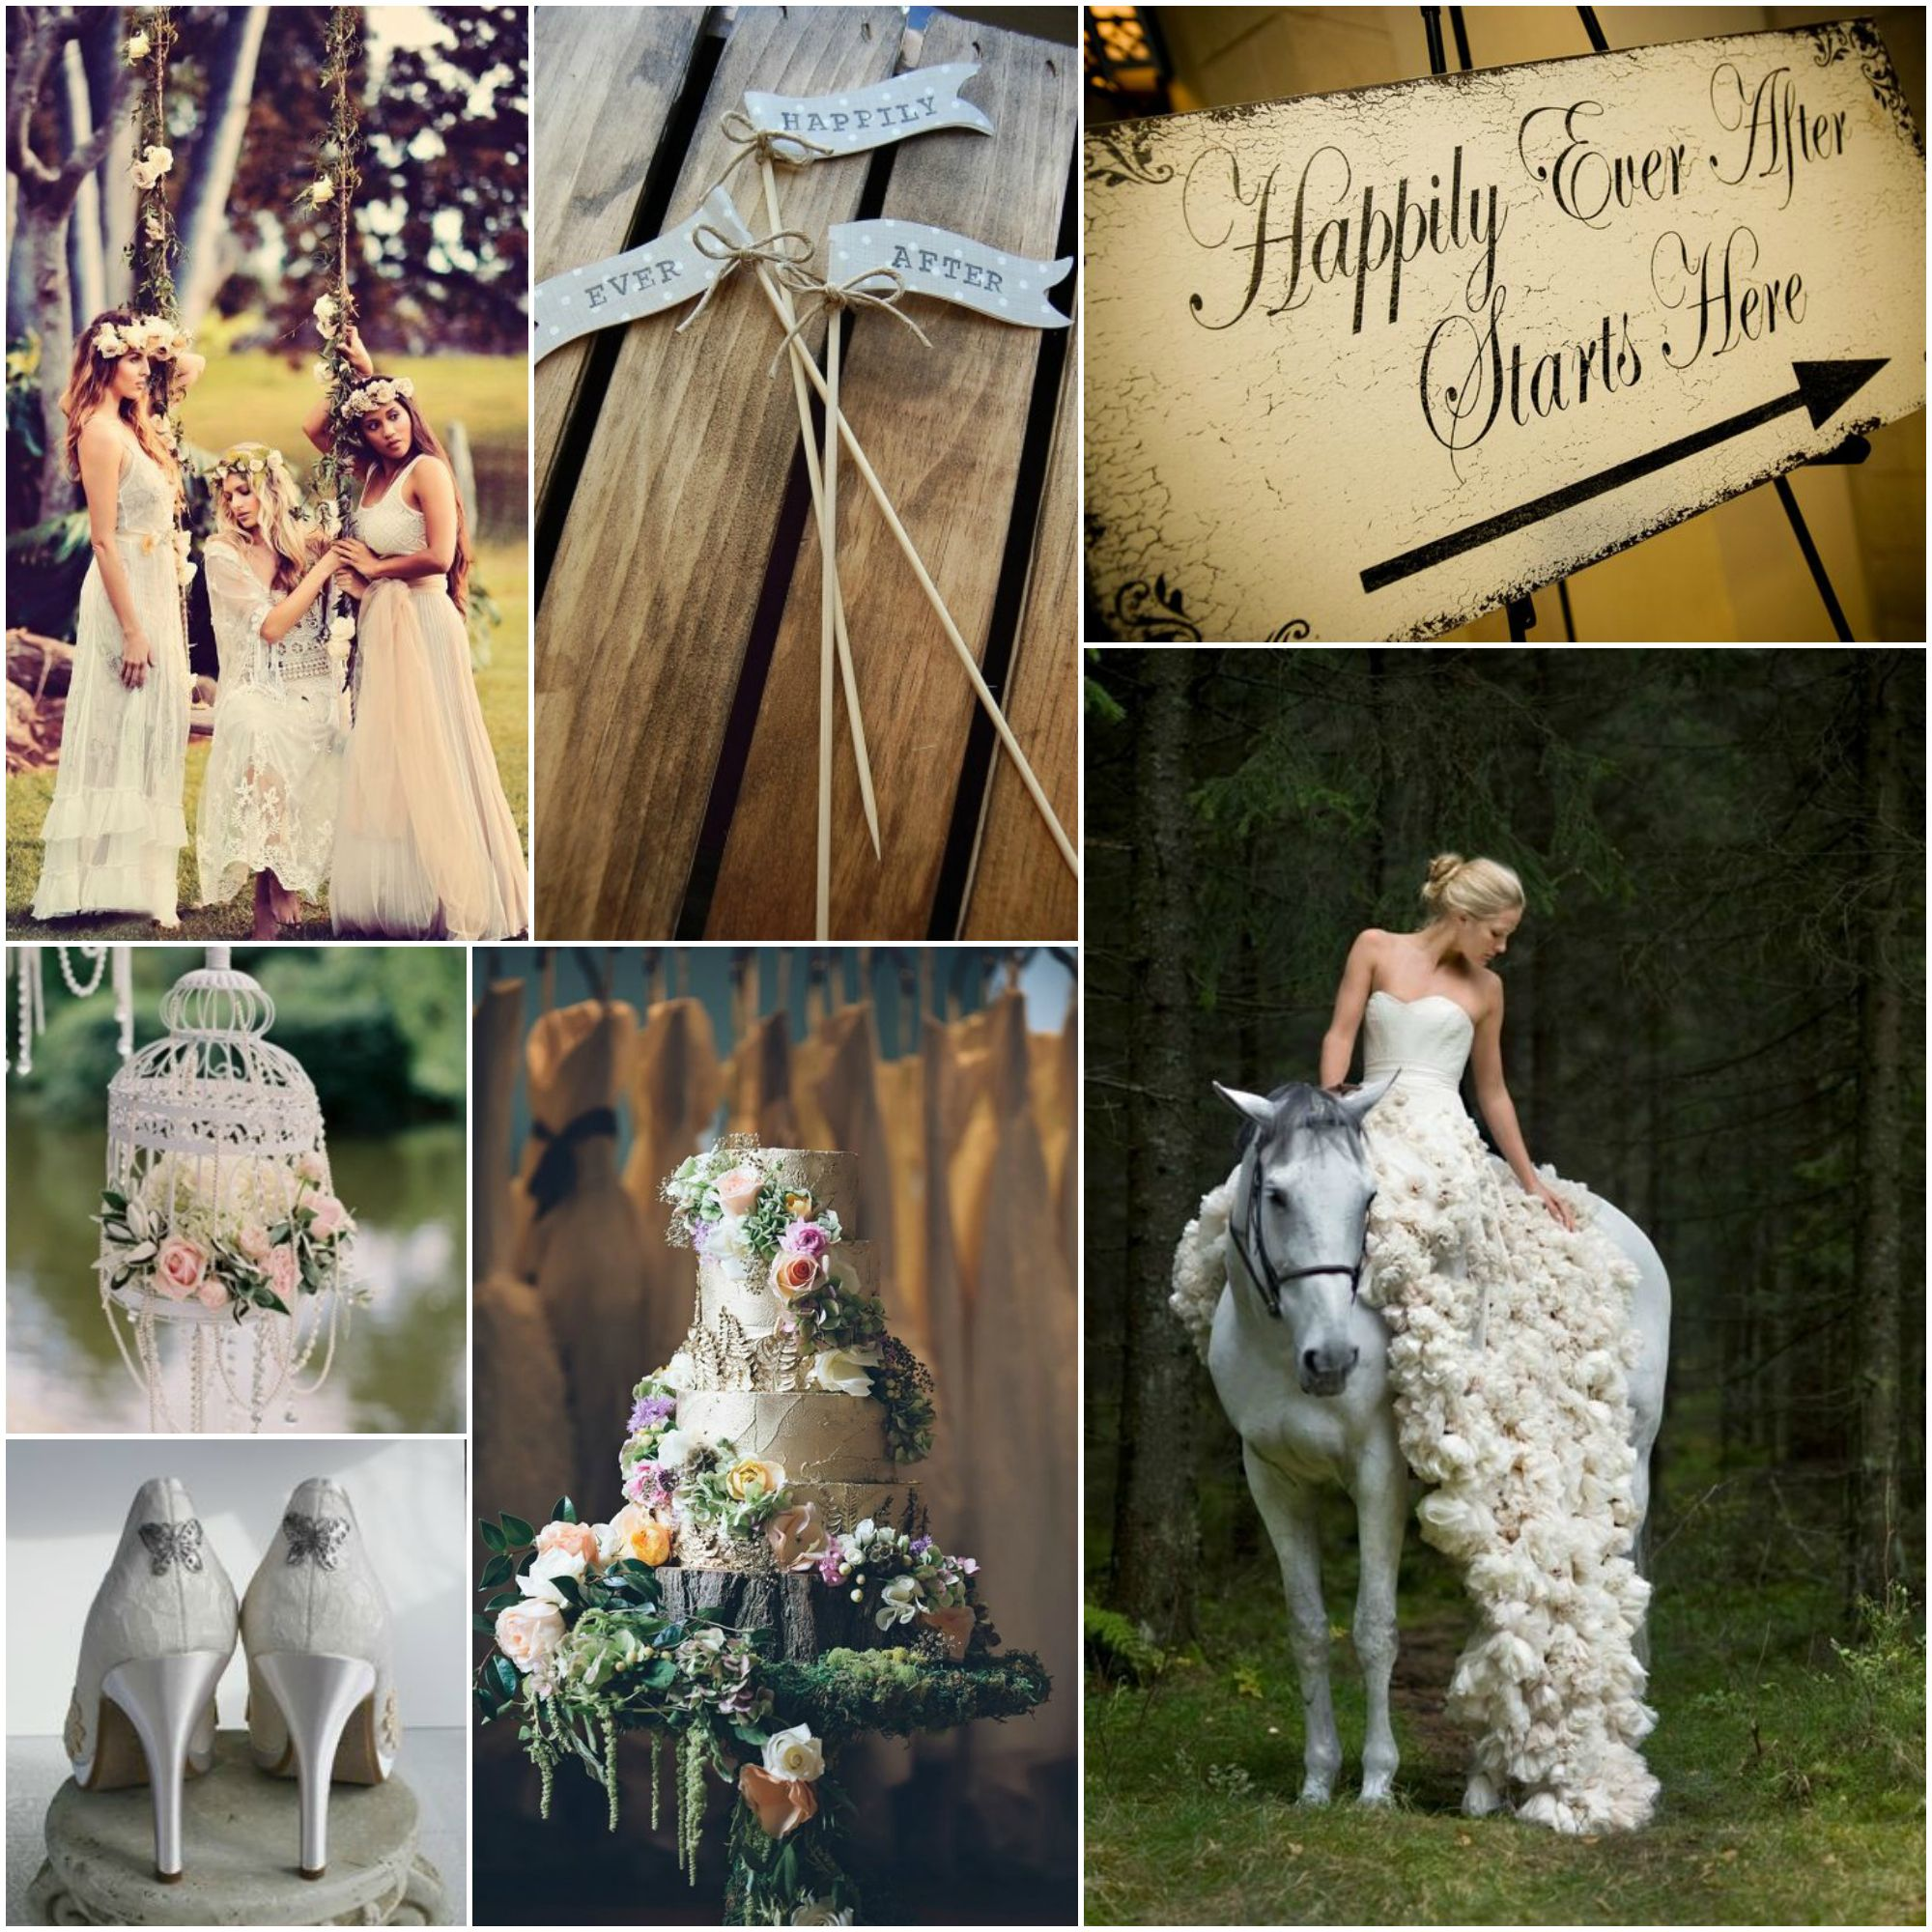 Fairytale Wedding Theme Ideas: Enchanted, Woodsy, Fairy Tale Wedding That's A Party Cool